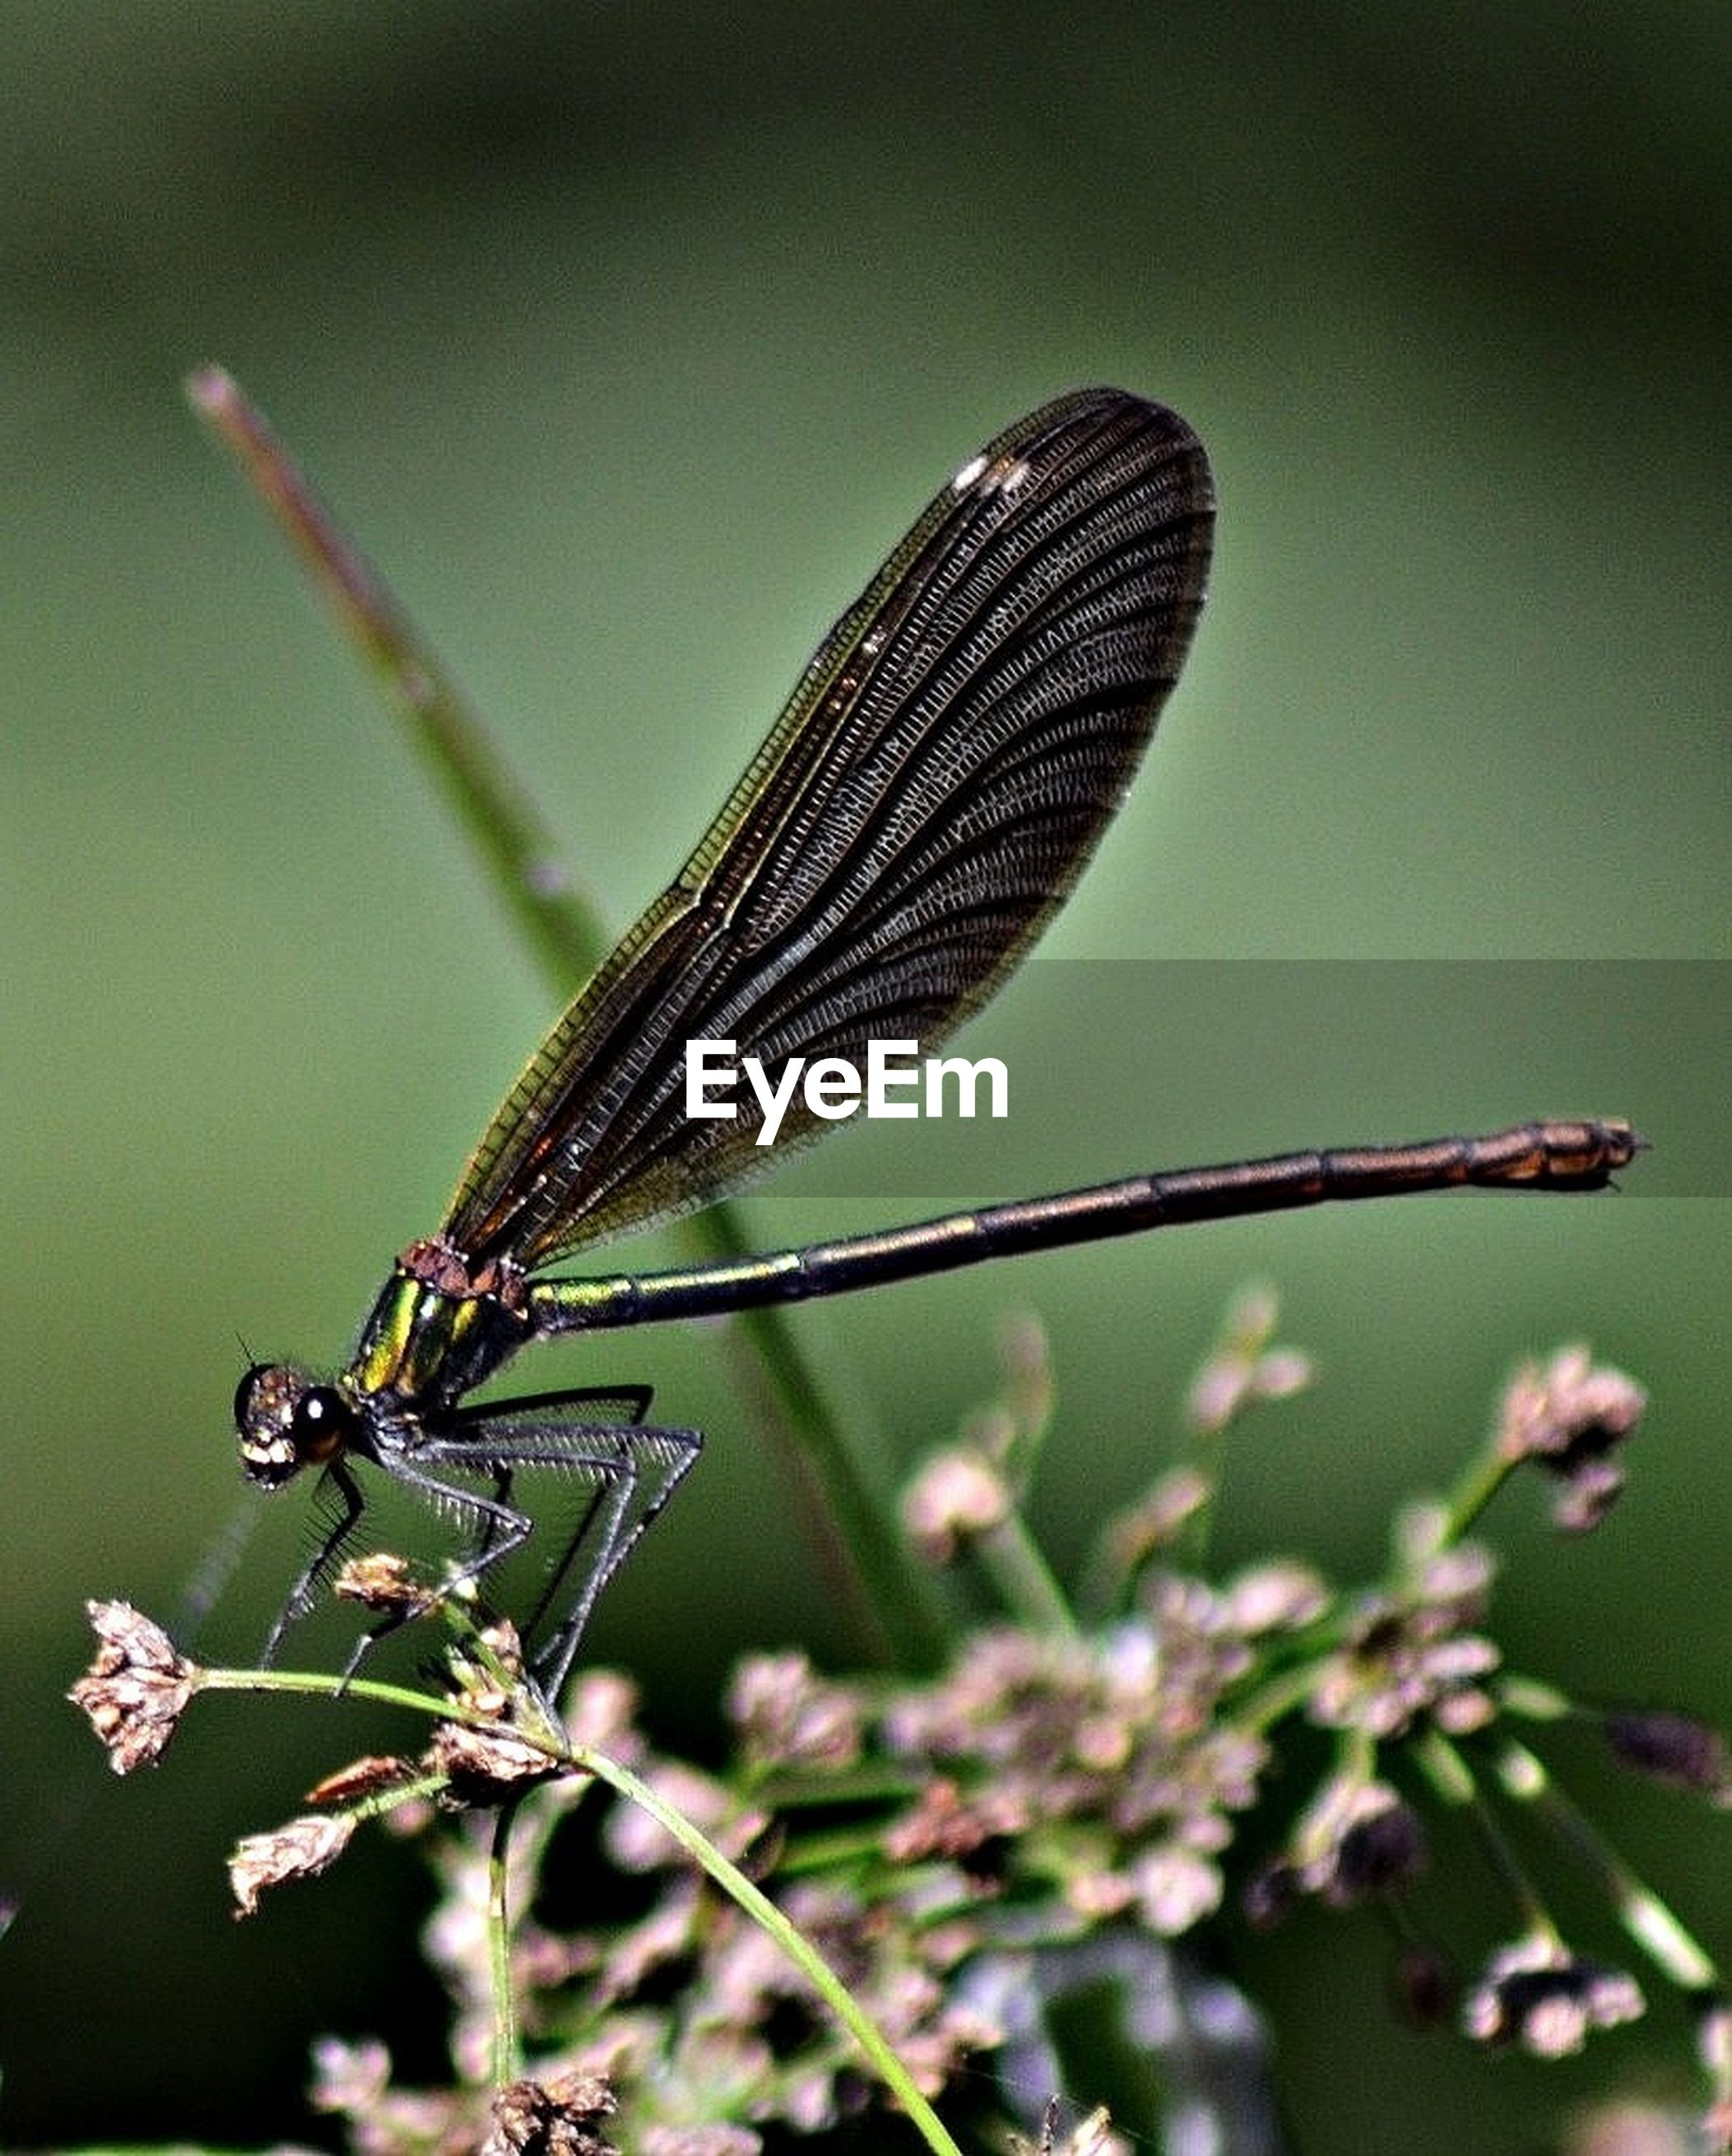 insect, one animal, animals in the wild, animal themes, wildlife, dragonfly, animal wing, close-up, focus on foreground, full length, nature, selective focus, zoology, invertebrate, day, outdoors, beauty in nature, butterfly, plant, animal antenna